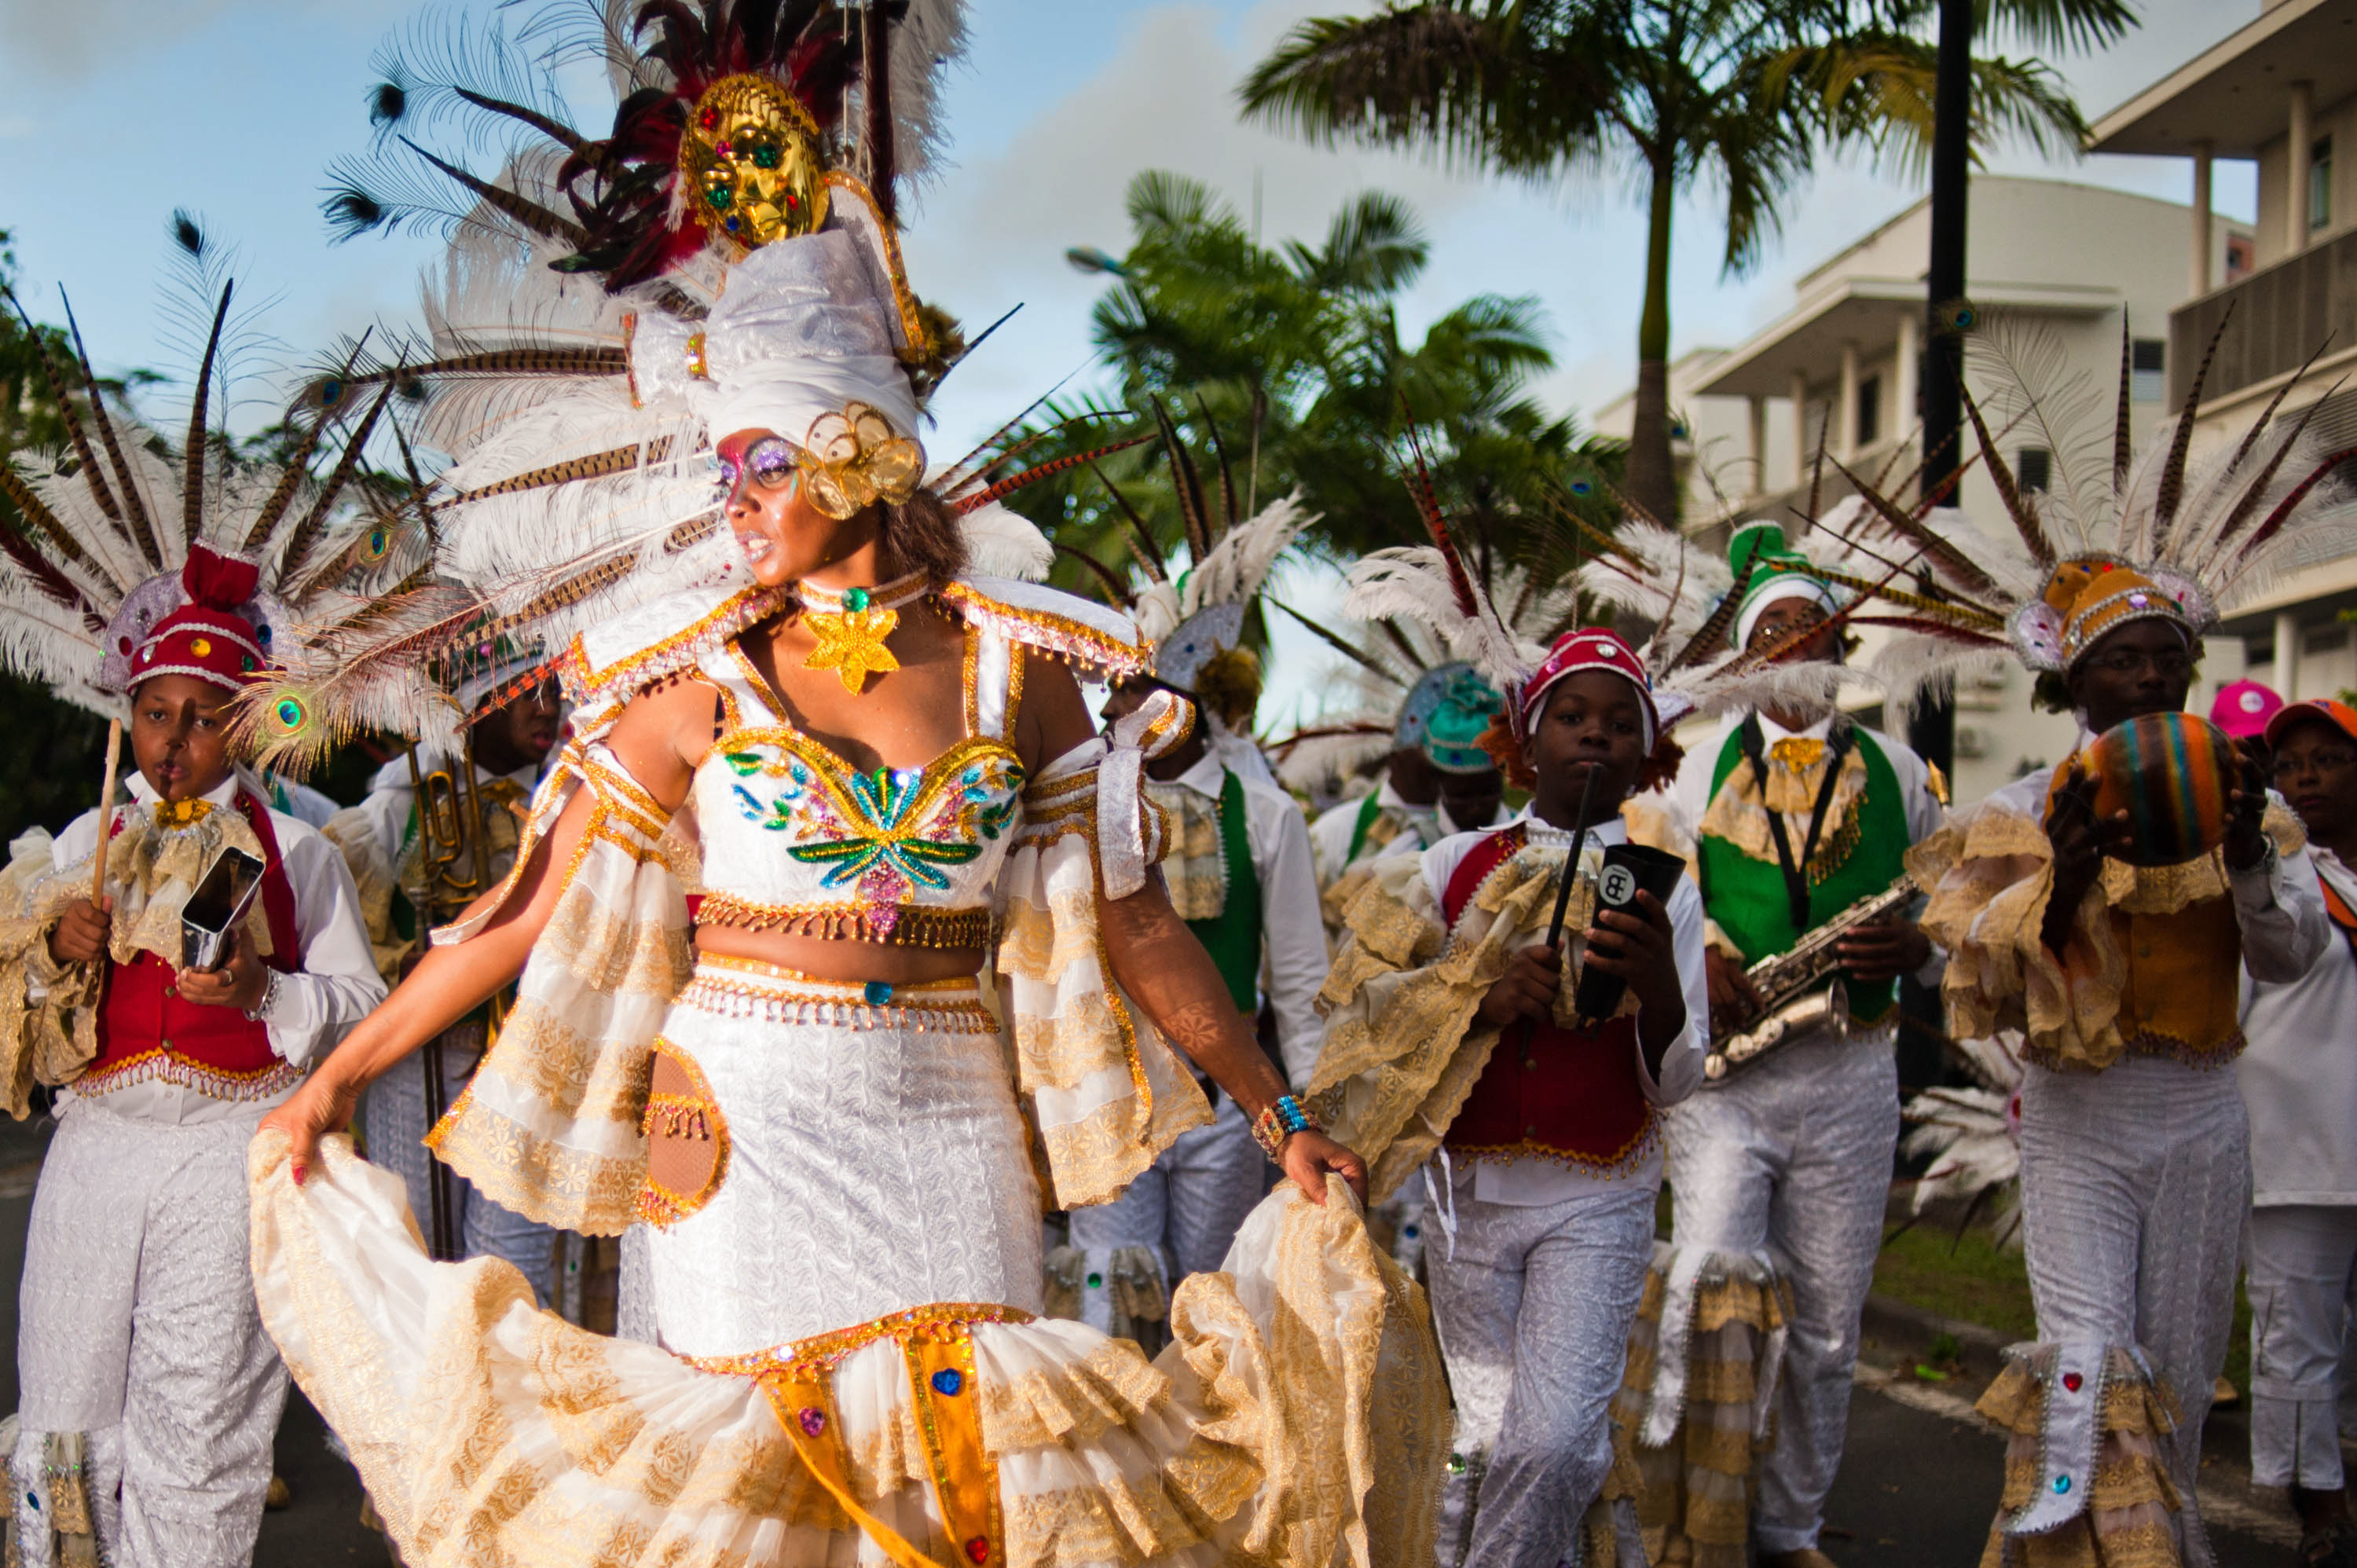 Guadeloupe winter carnival, Pointe-à-Pitre parade, Photograph by Mstyslav Chernov (CC-BY SA 3.0)